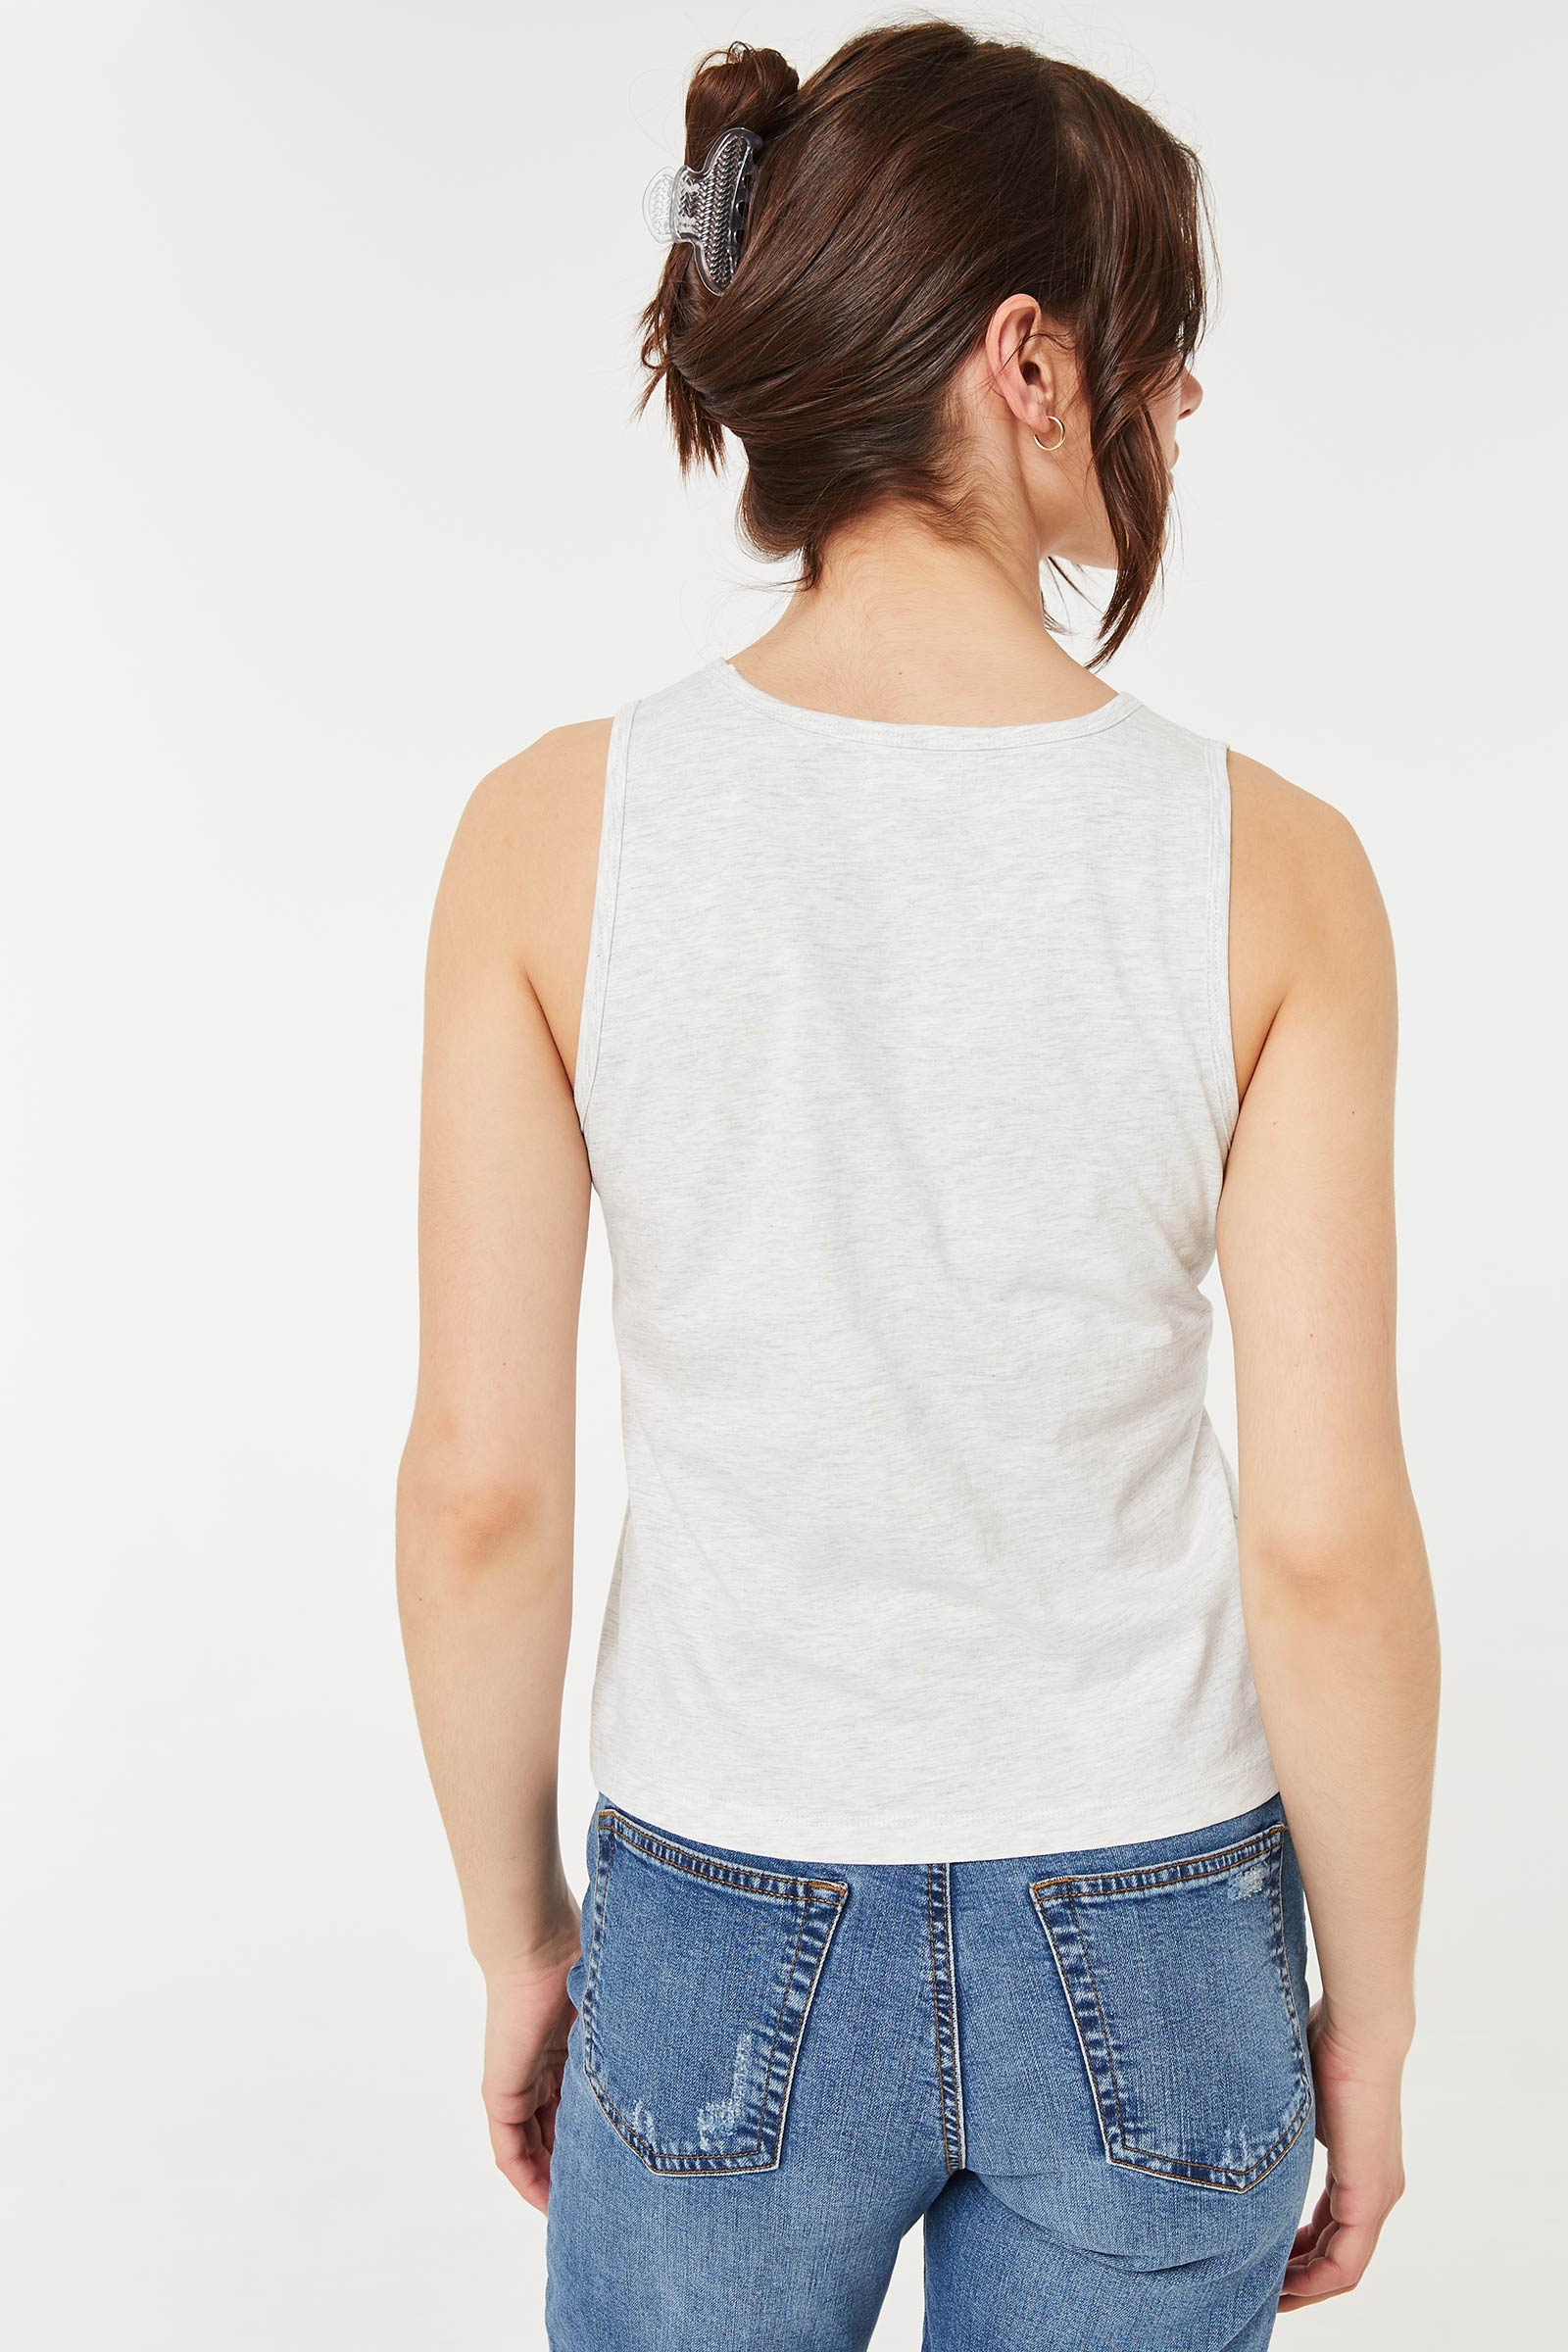 Camisole Mother Earth